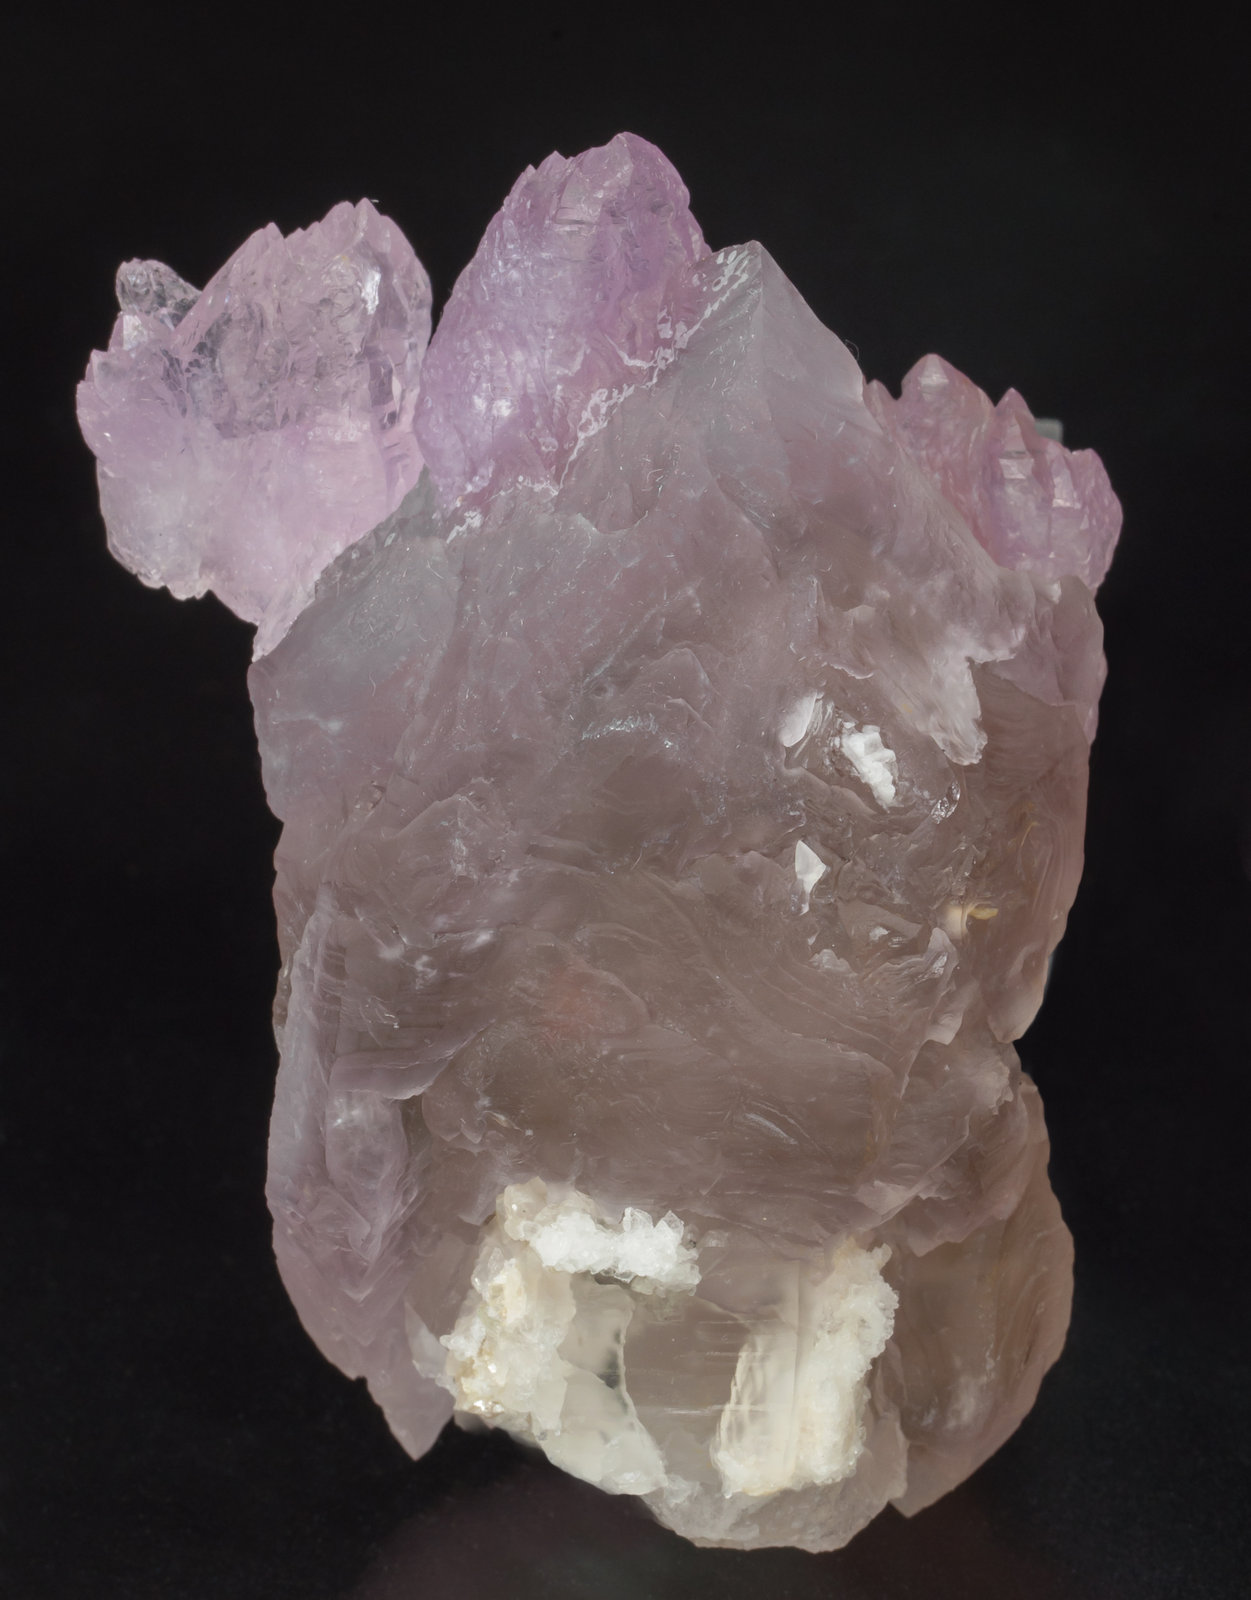 specimens/s_imagesAD3/Quartz_rose-CB99AD3r.jpg